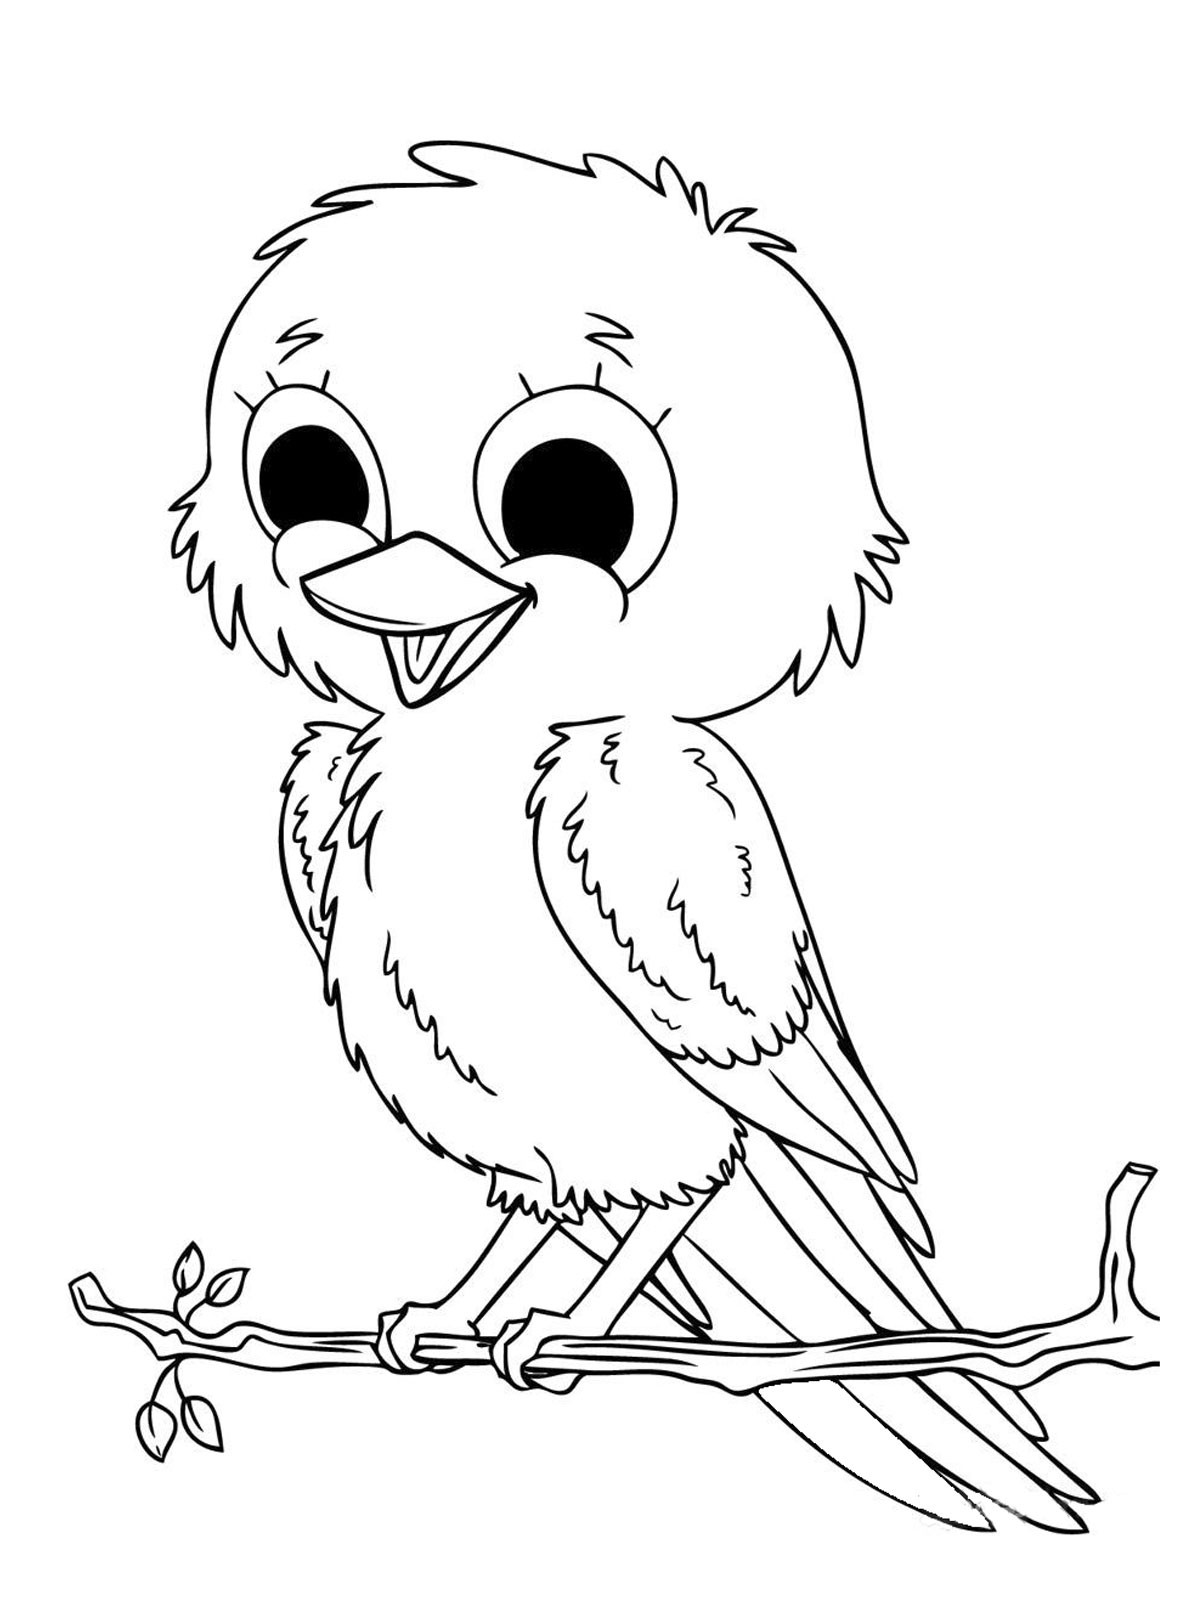 Cute Animal Coloring Pages For Girls  Baby Animal Coloring Pages